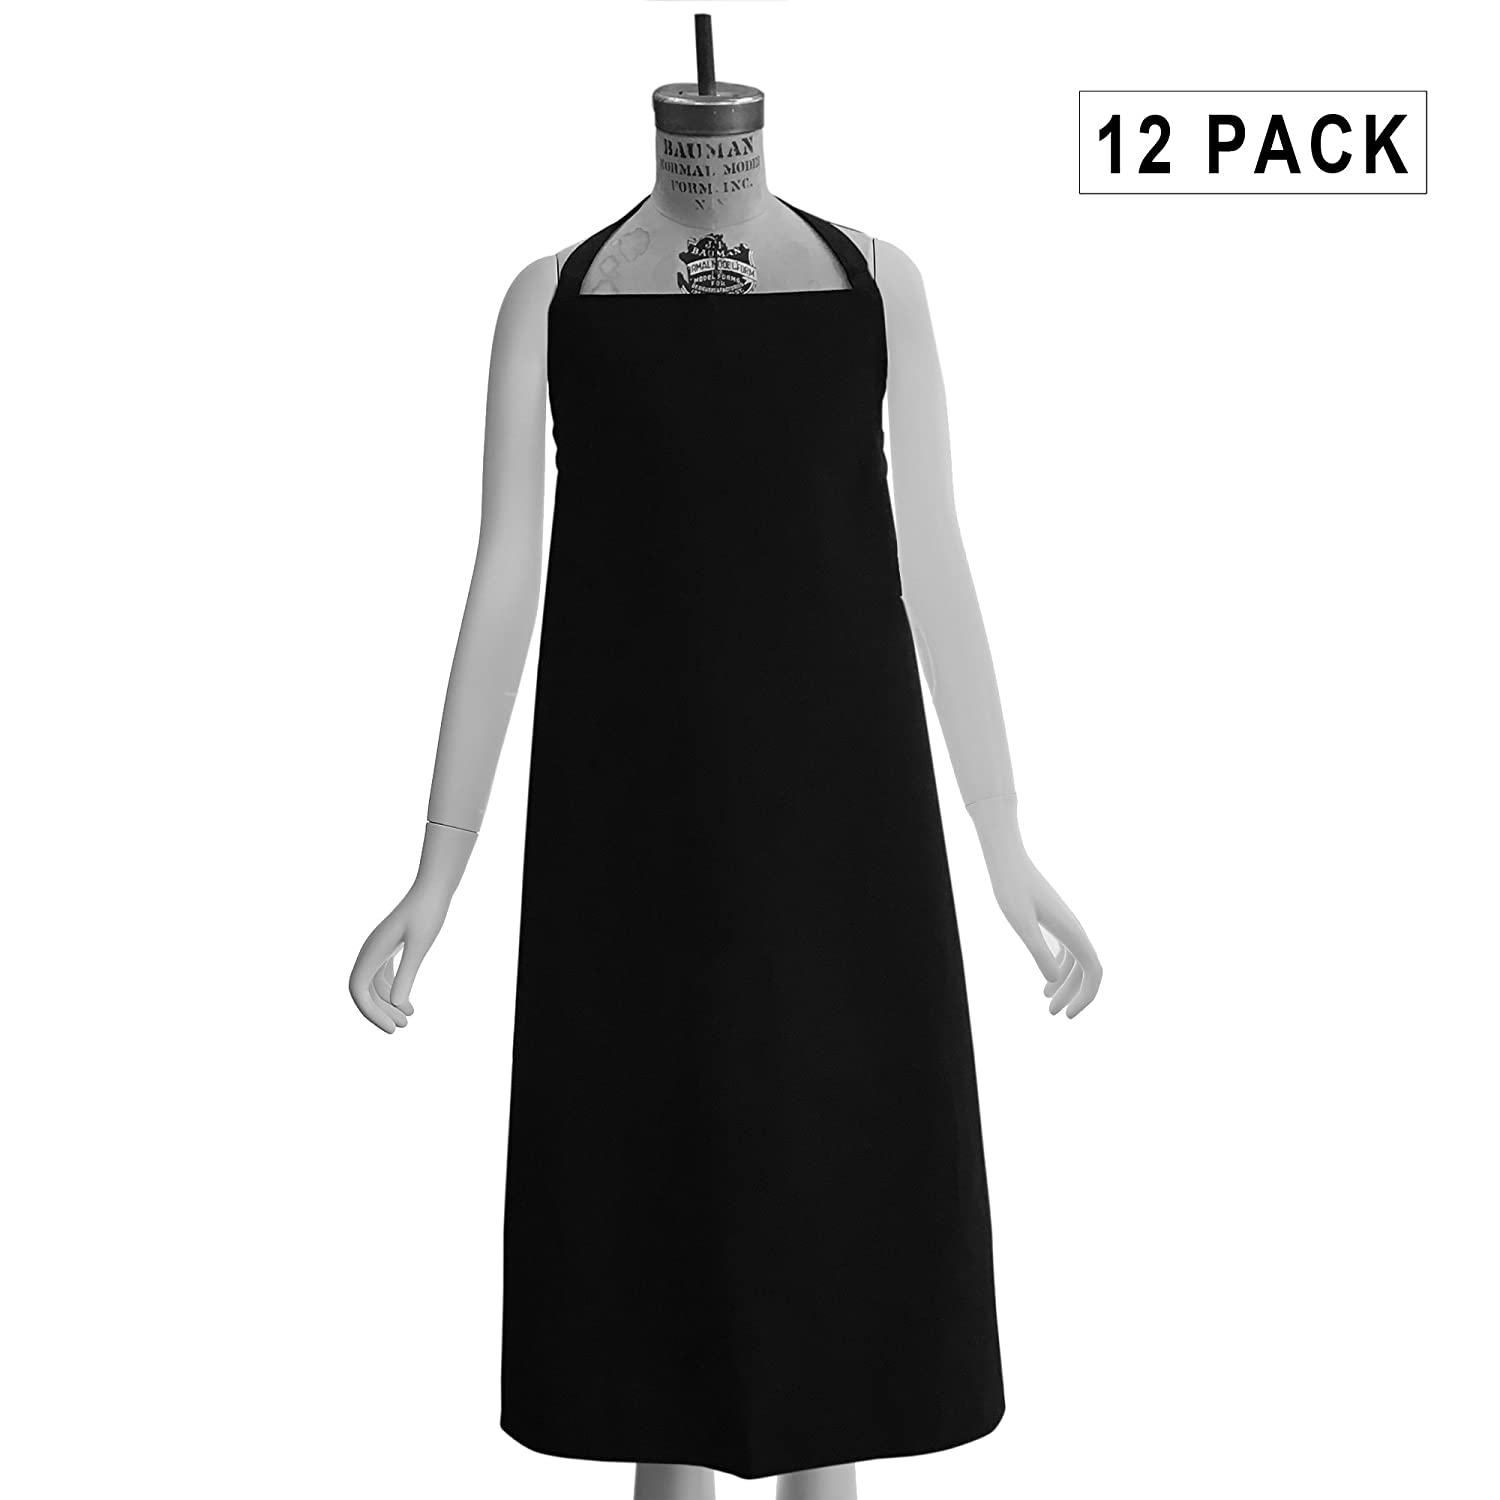 Chef Apron Black- One Dozen (12-Pack) Institutional Quality HomeTex